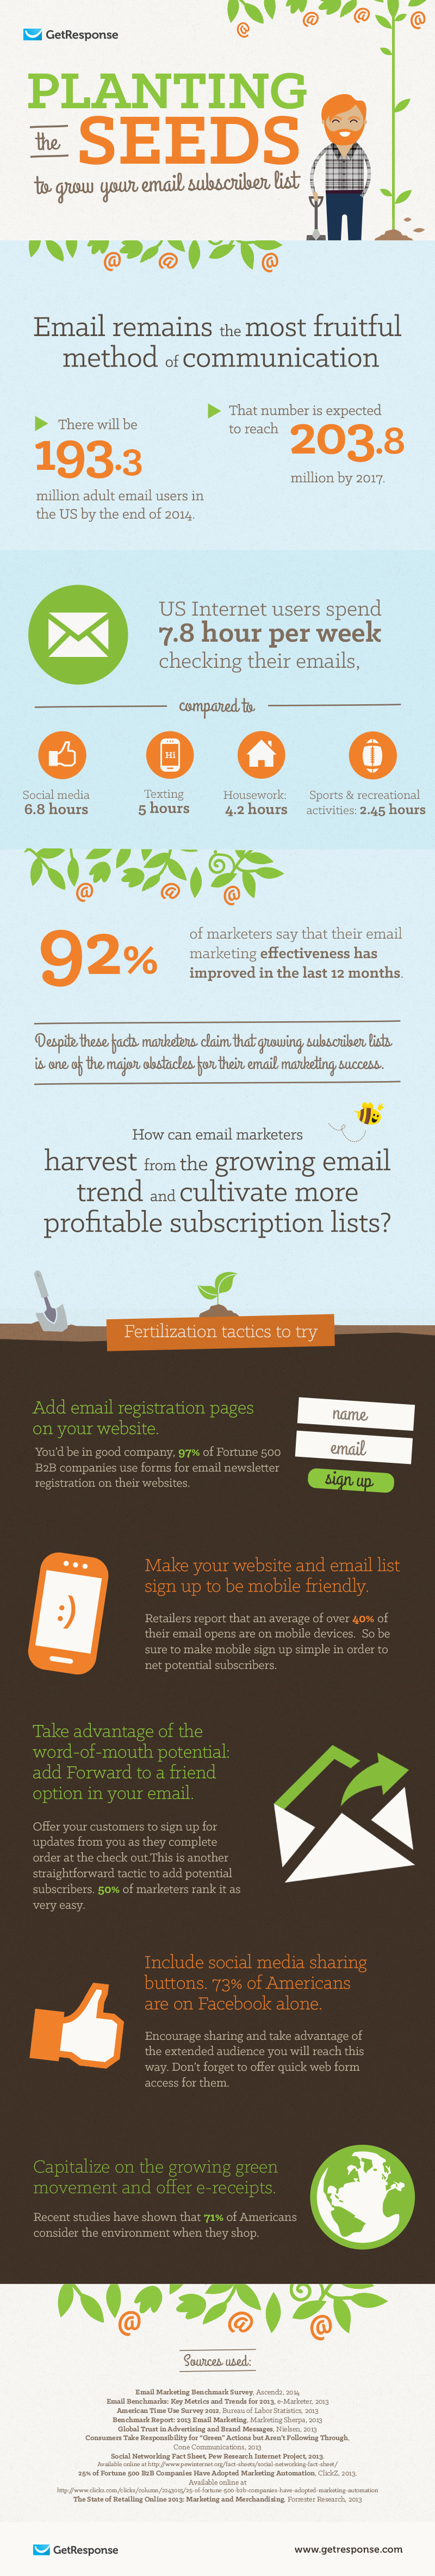 Planting-the-seeds-to-grow-your-email-subscriber-list (1)